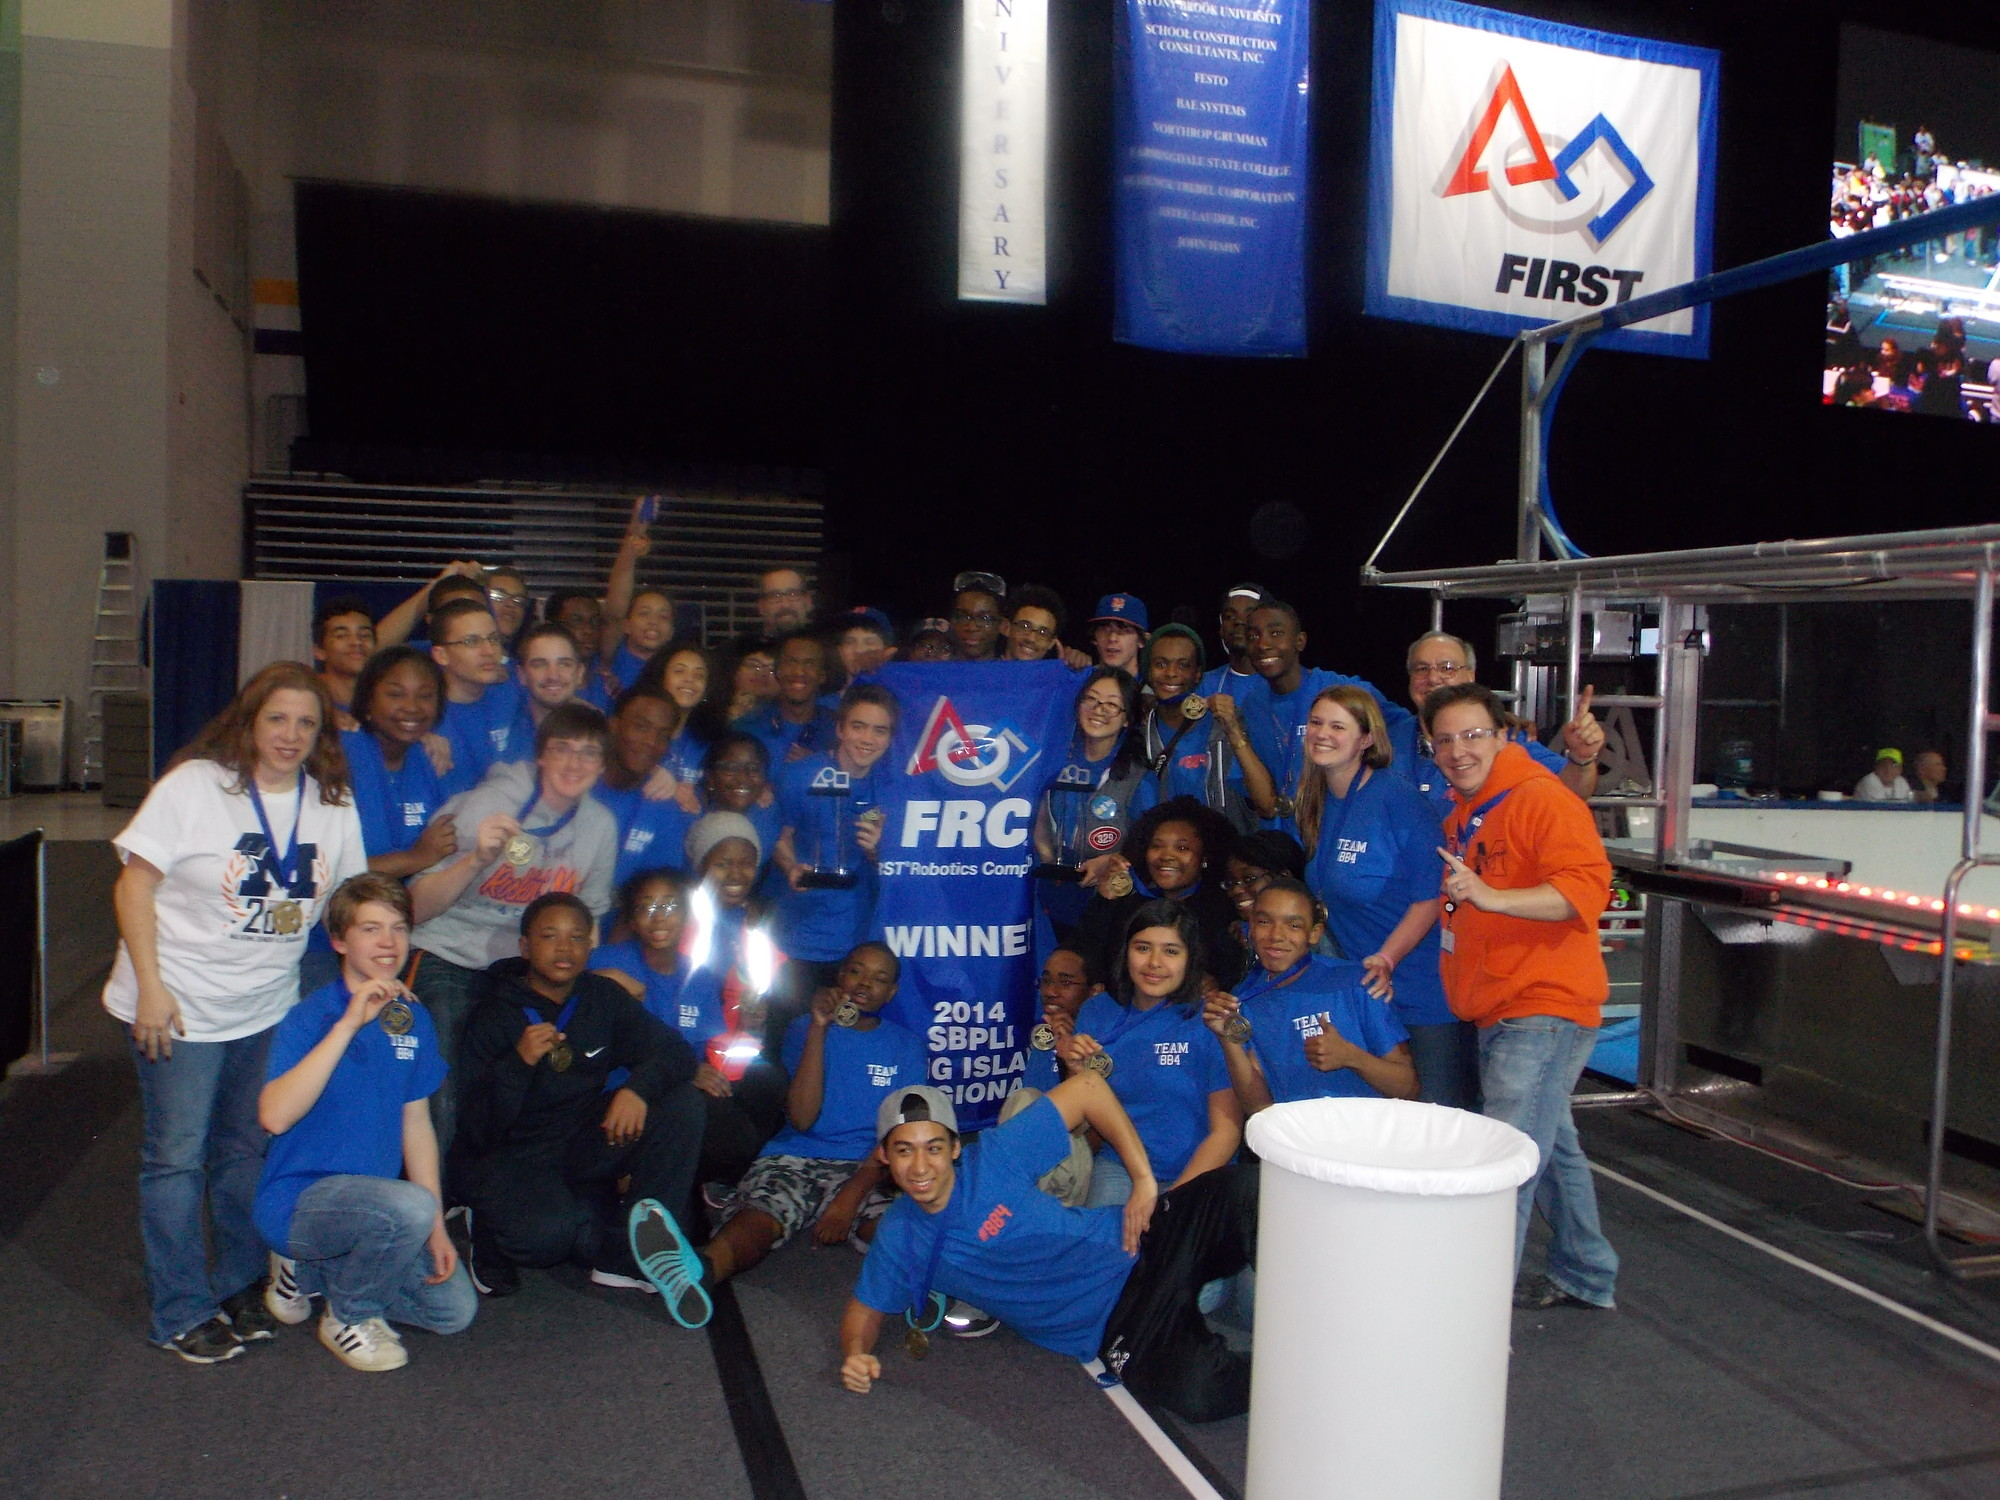 Malverne�s master teacher Charles Vessalico, right, celebrated a recent victory with his Mechanical Mules Robotics Team after qualifying for the quarter finals at this year�s FIRST robotics regional competition.